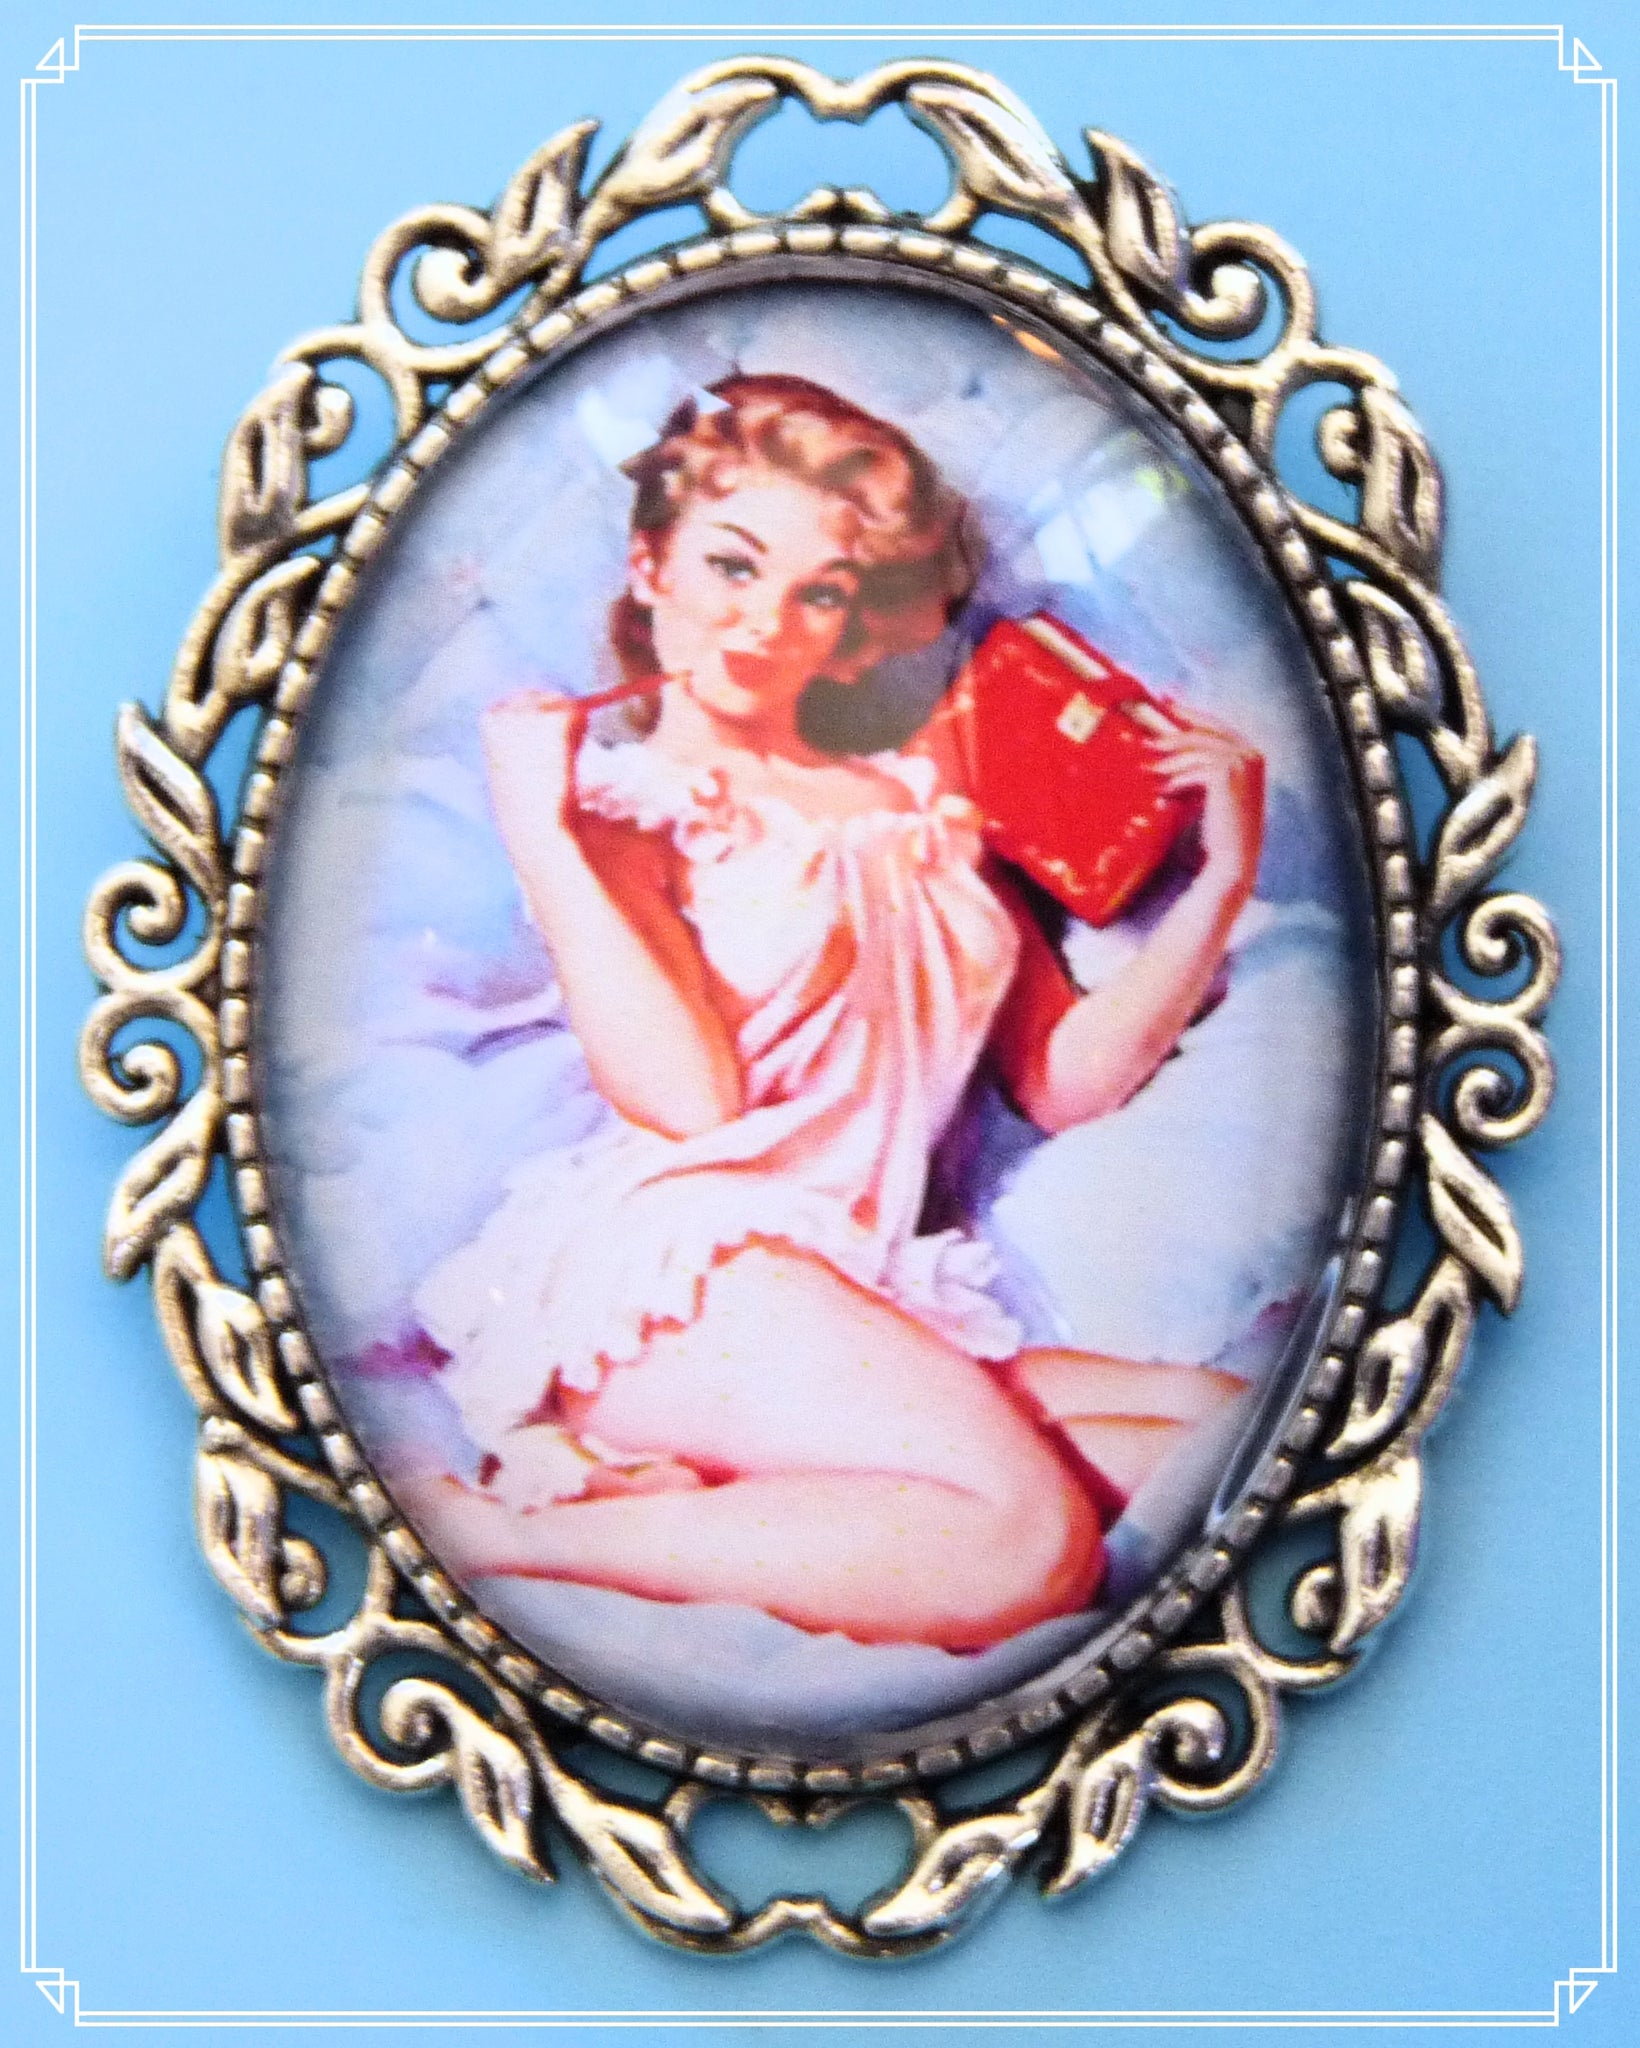 Pinup Peaches - Eve brooch